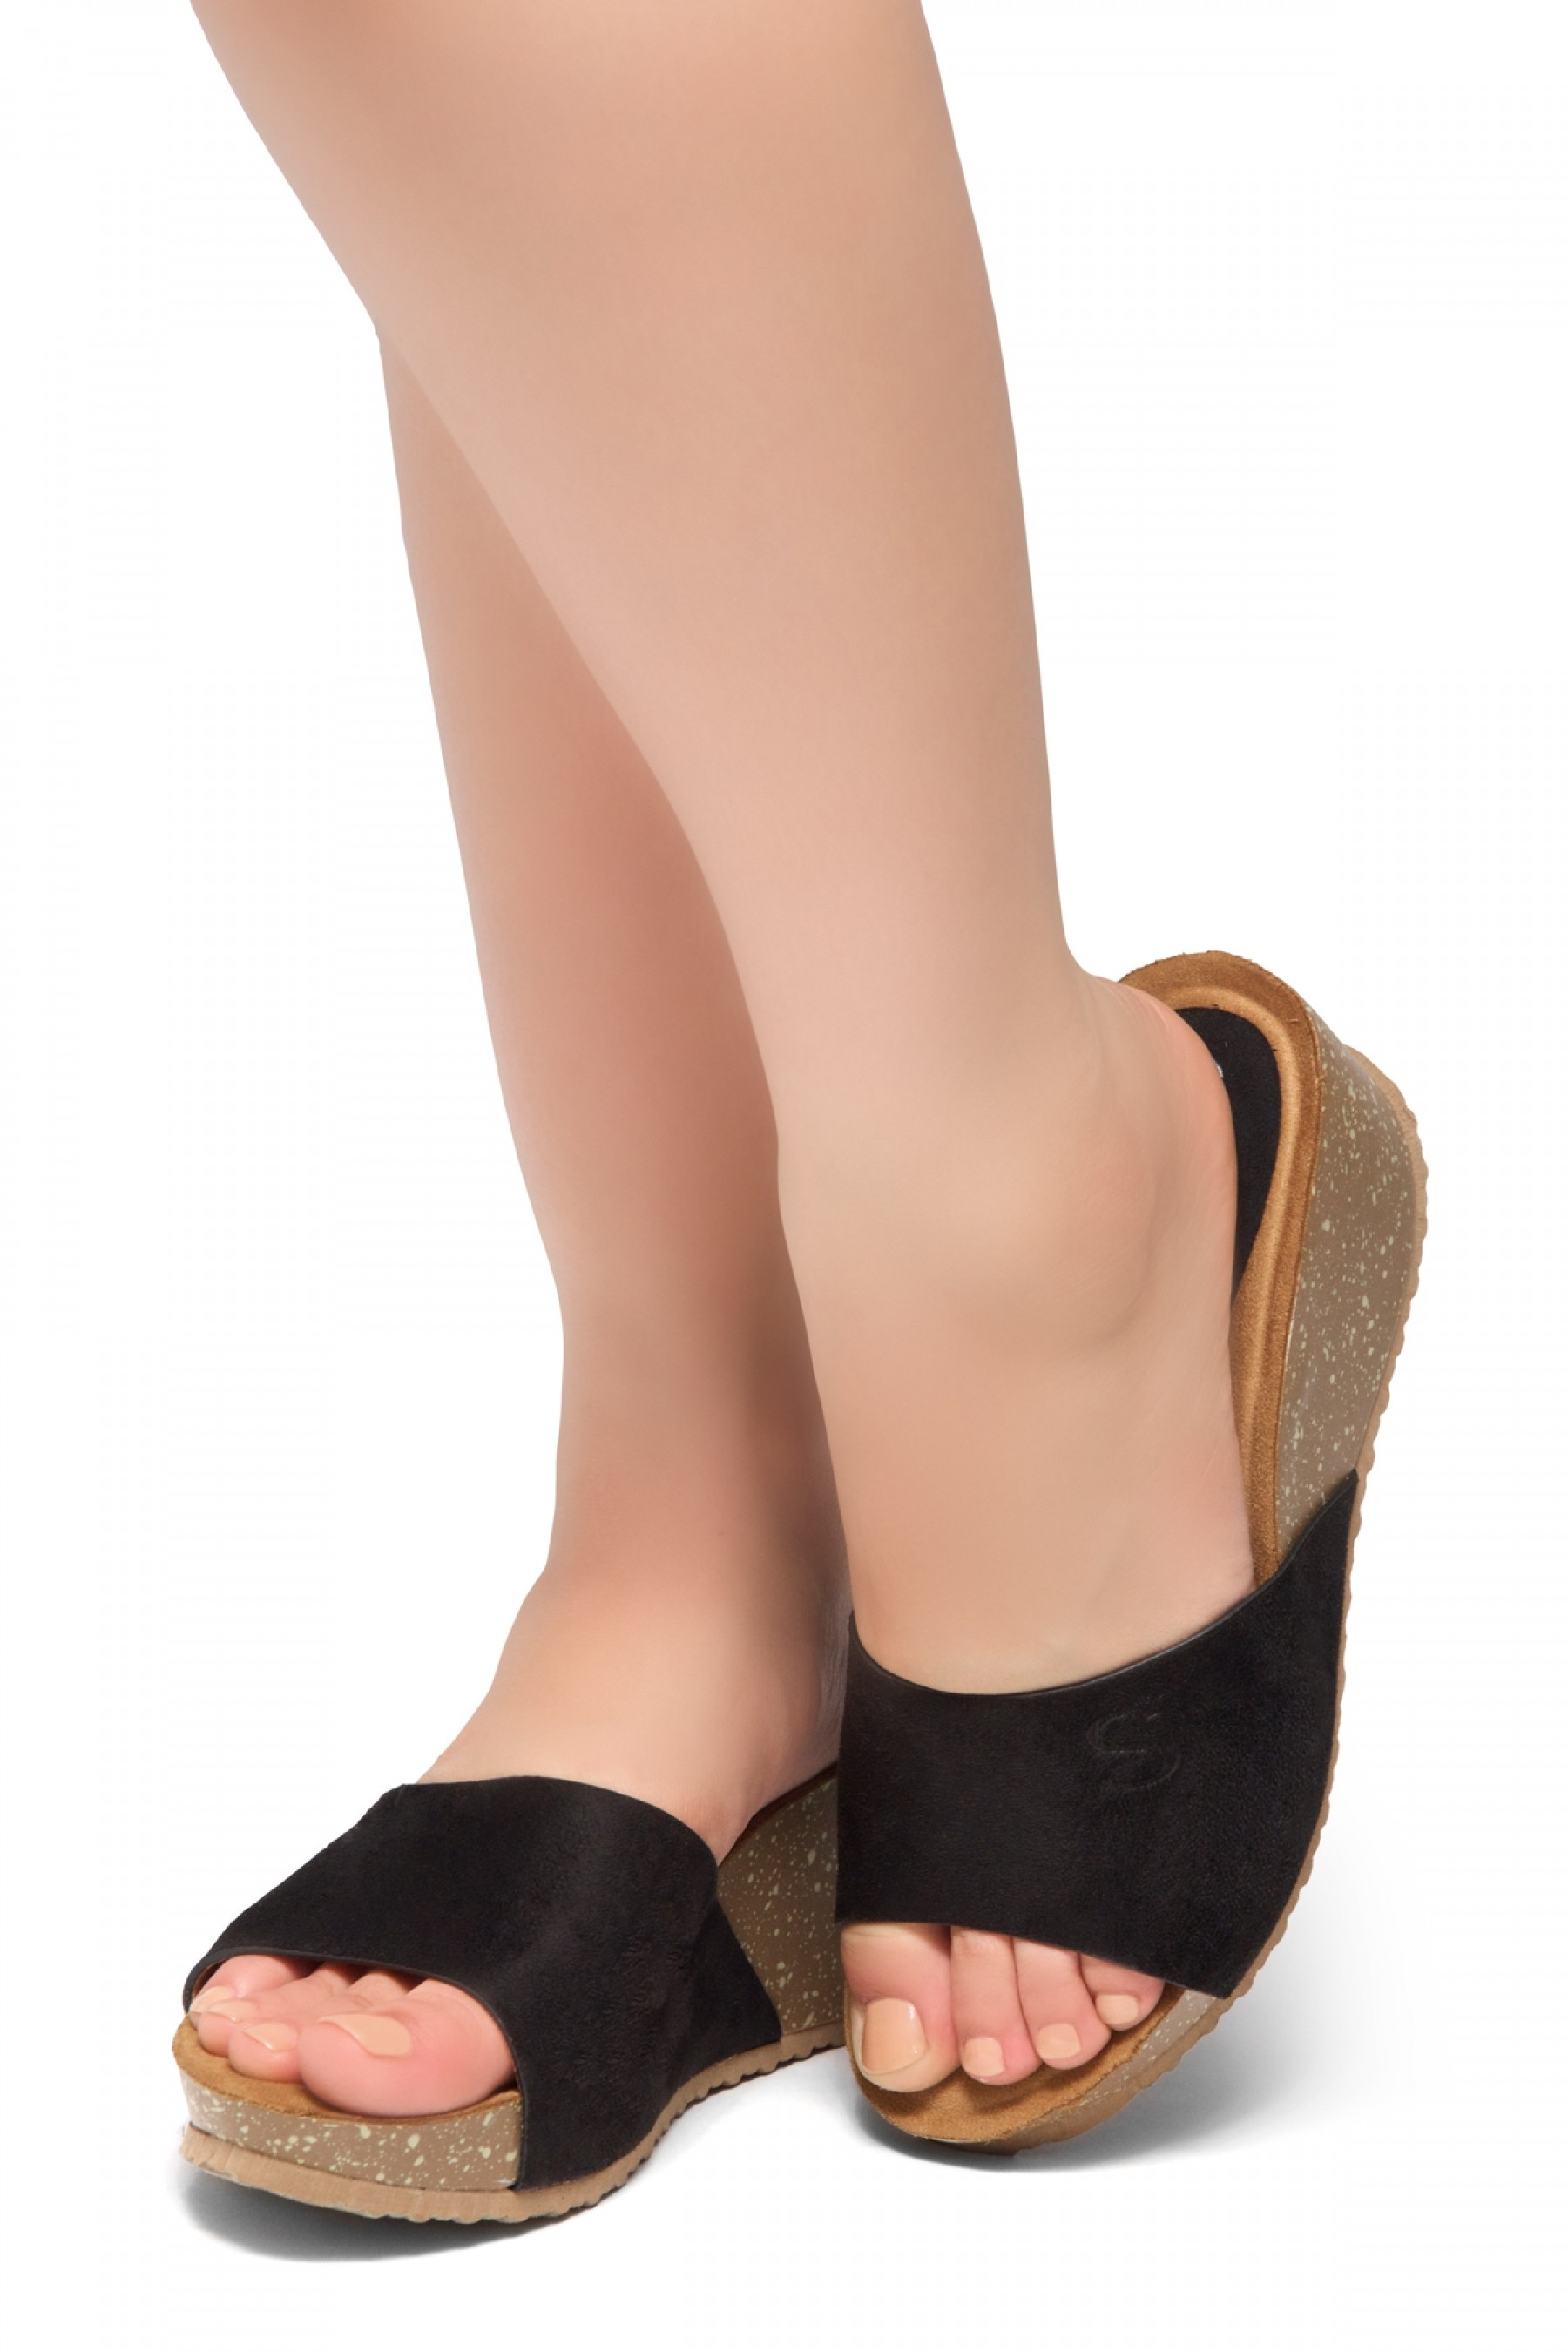 HerStyle Alessia -Open Toe Slide Wedge Sandals (Black)